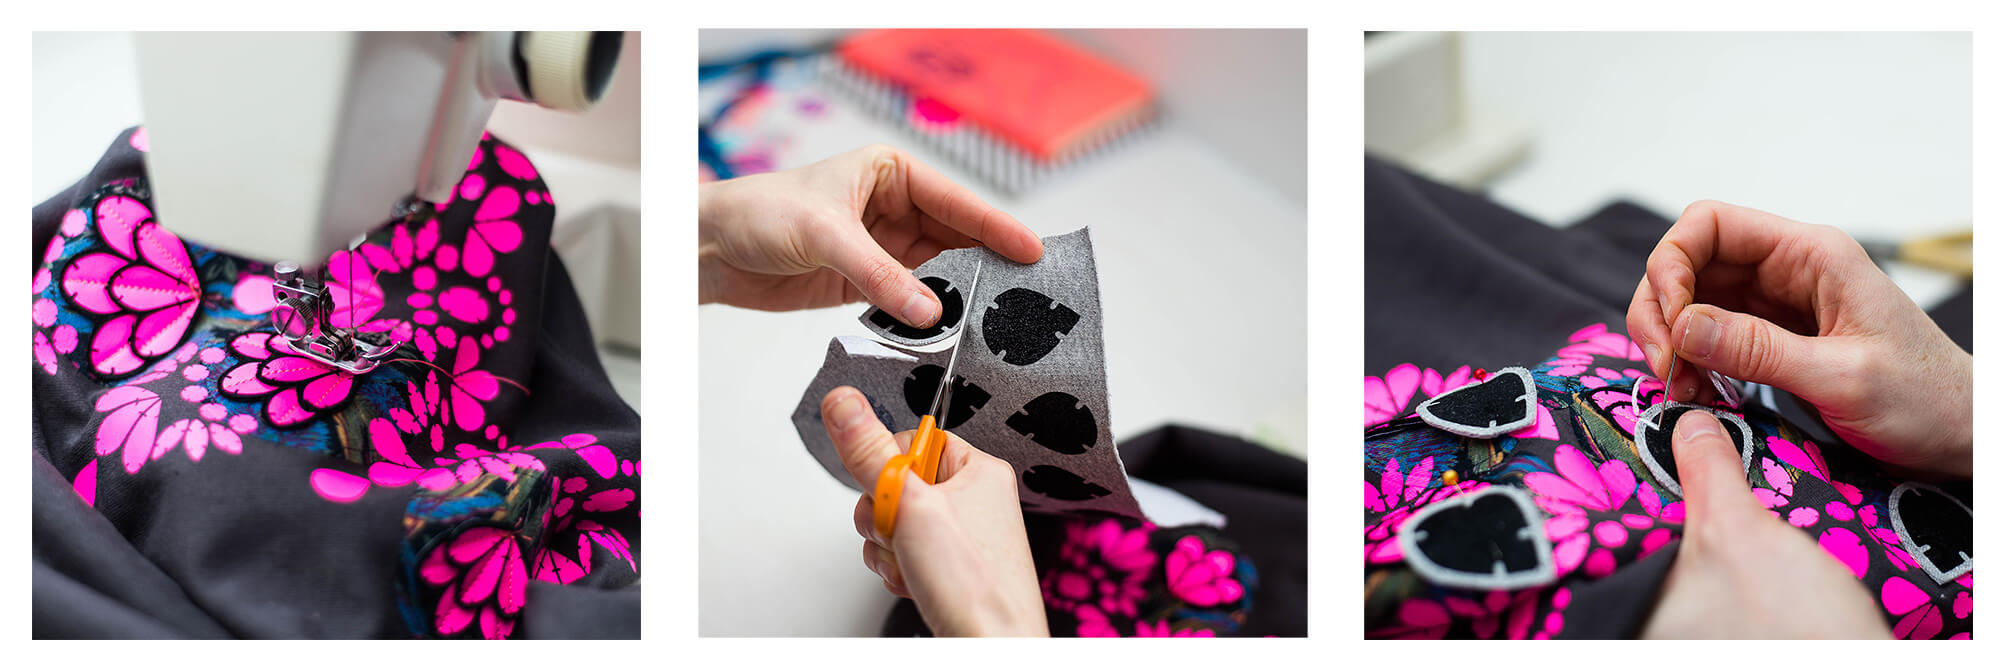 This image consists of the photos, each depicts a different stage of the embellished sweatshirt stitching process. A sweatshirt with a fluoro pink print is seen on a sewing machine. A pair of woman's hands using small sharp, orange handled scissors to cut out some printed, fabric teardrop shapes and the same hands are seen hand sewing the teardrops to the sweatshirt.